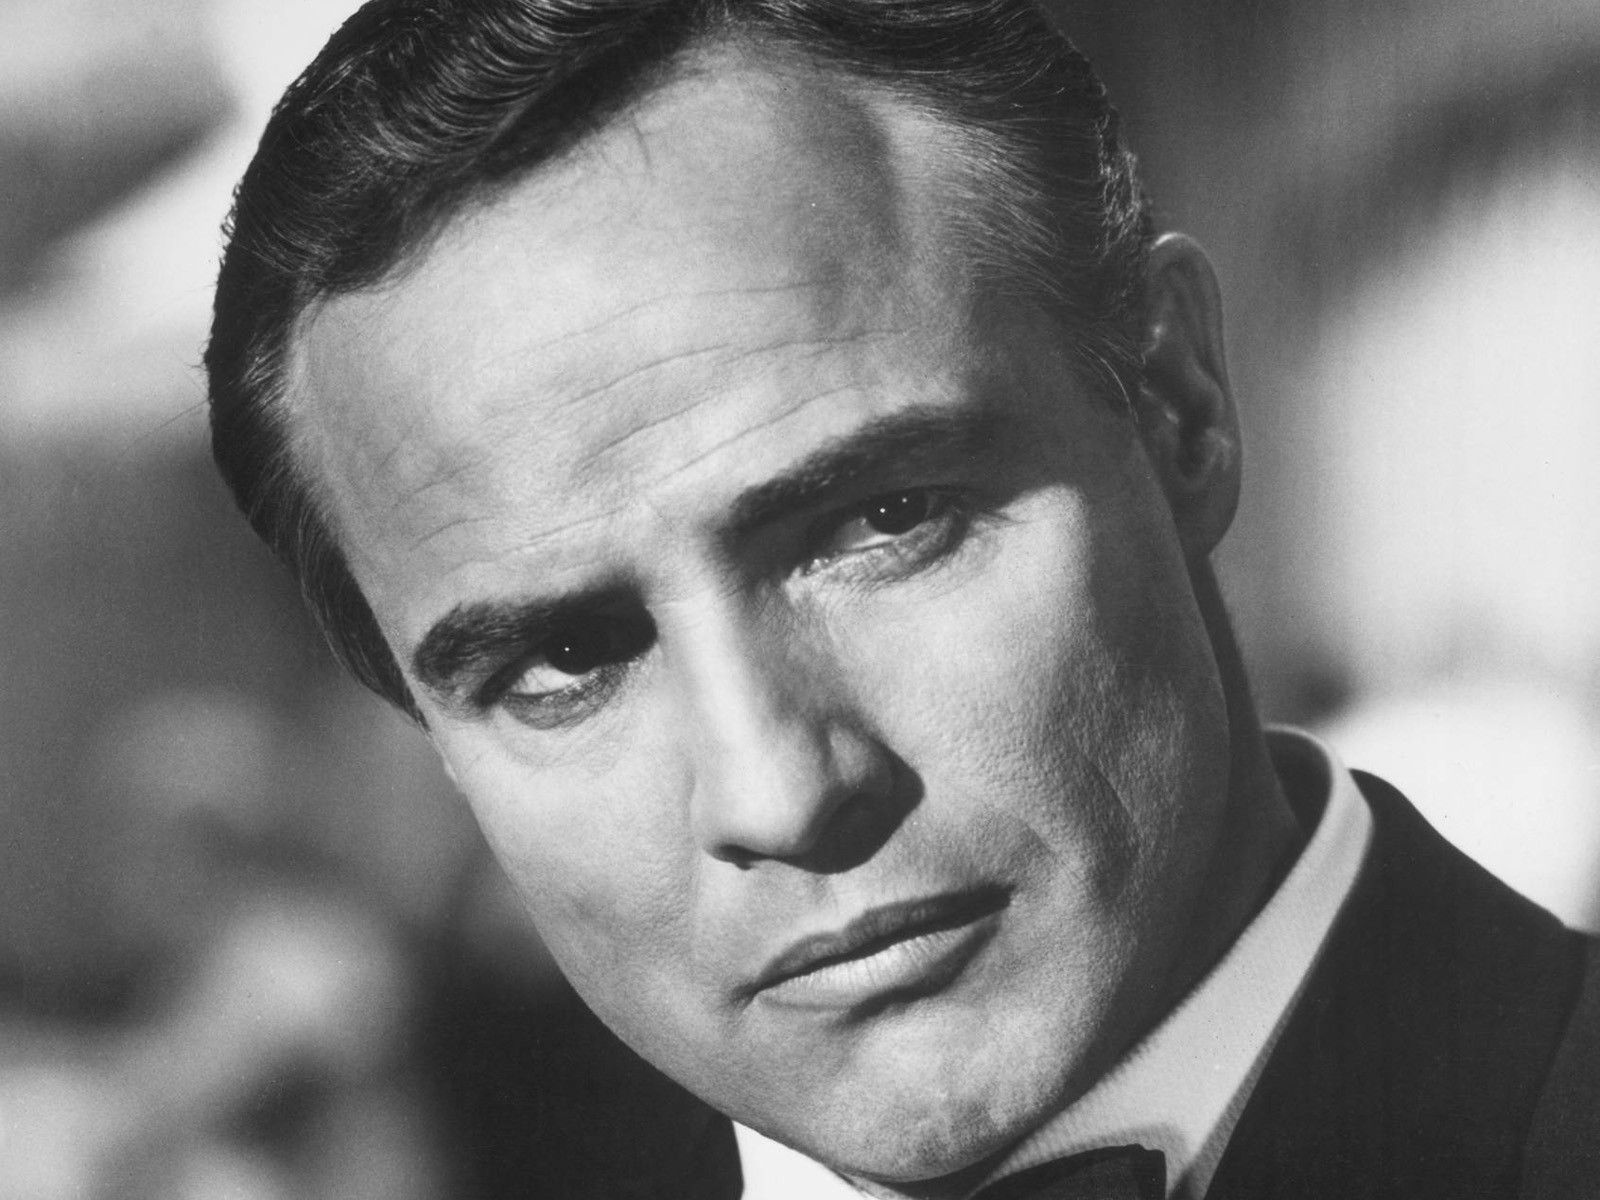 Marlon Brando is widely considered the greatest movie actor of all time rivaled only by the more theatrically oriented Laurence Olivier in terms of